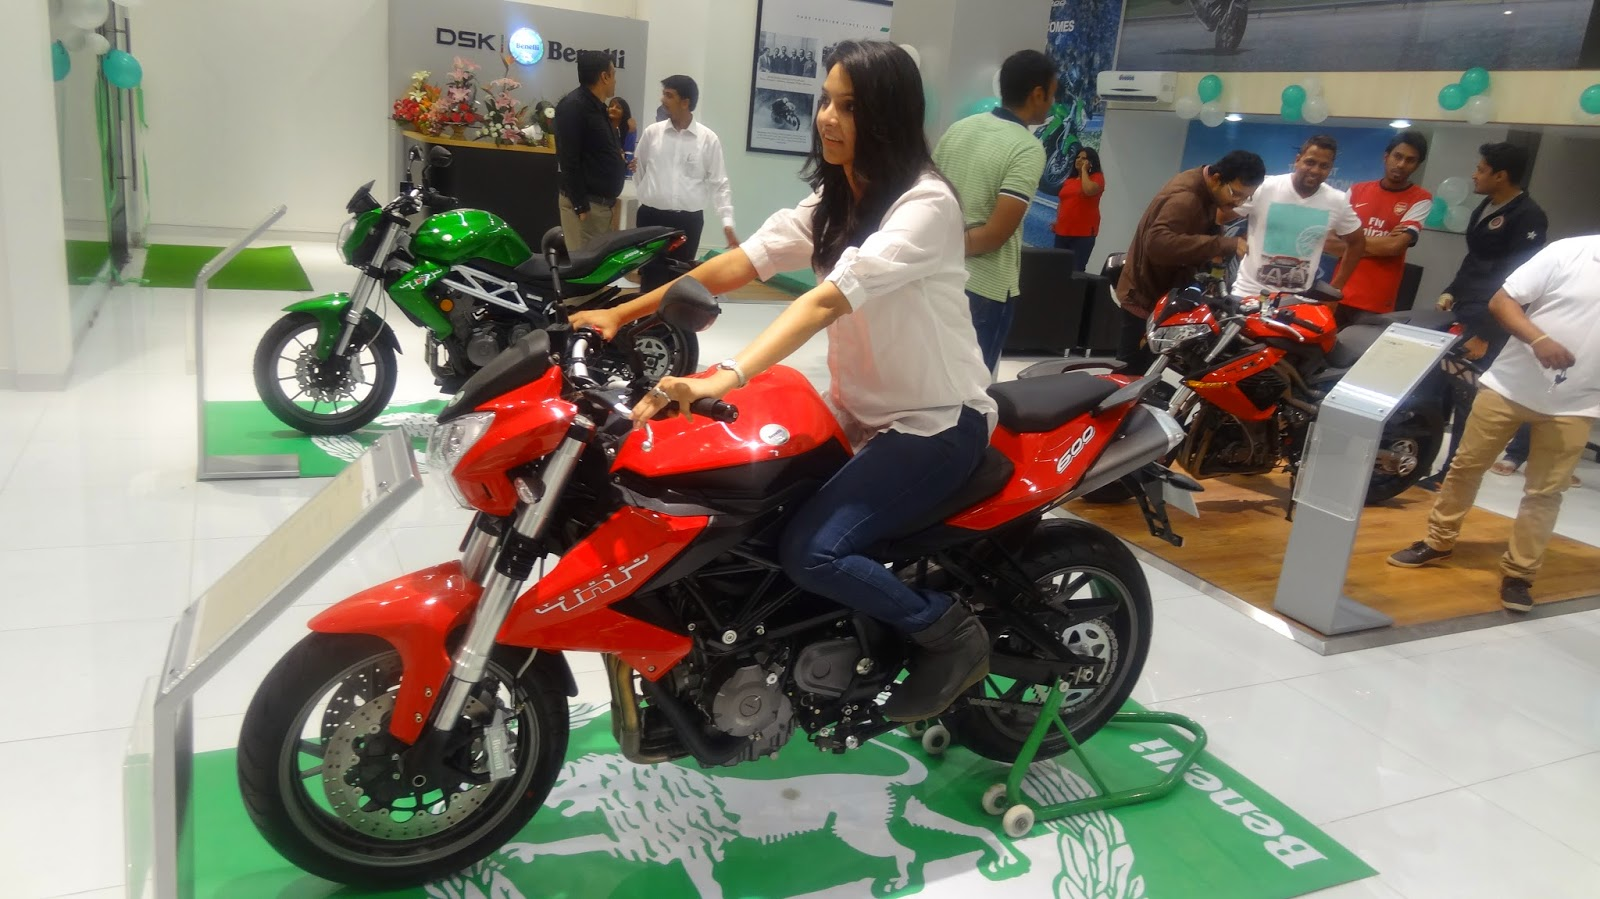 right to information act office address in bangalore dating: dsk benelli tnt 300 price in bangalore dating